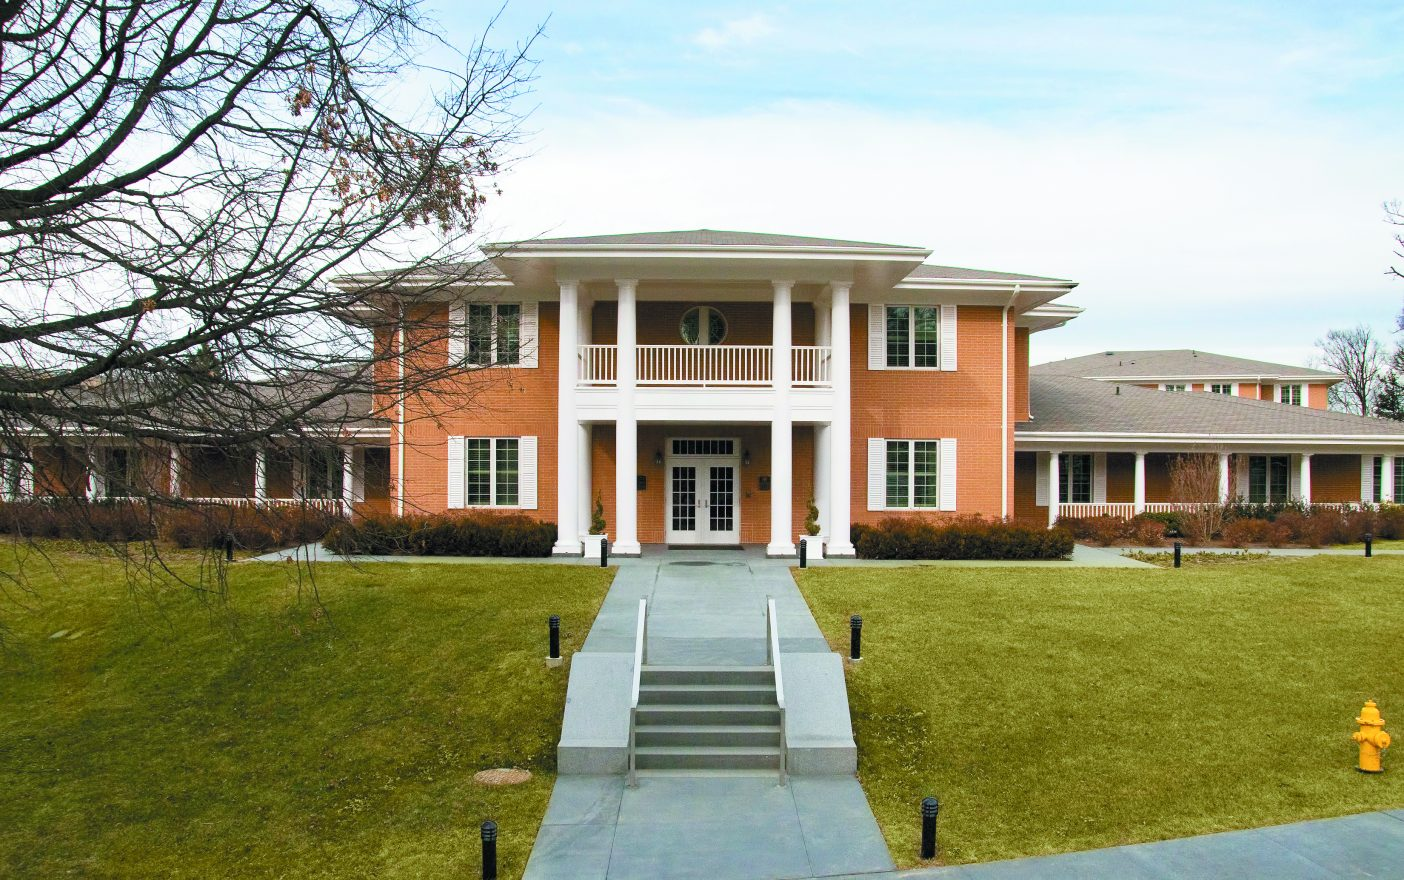 The Walter Reed Fisher House — one of the beautiful designs typical of Fisher Houses throughout the country.